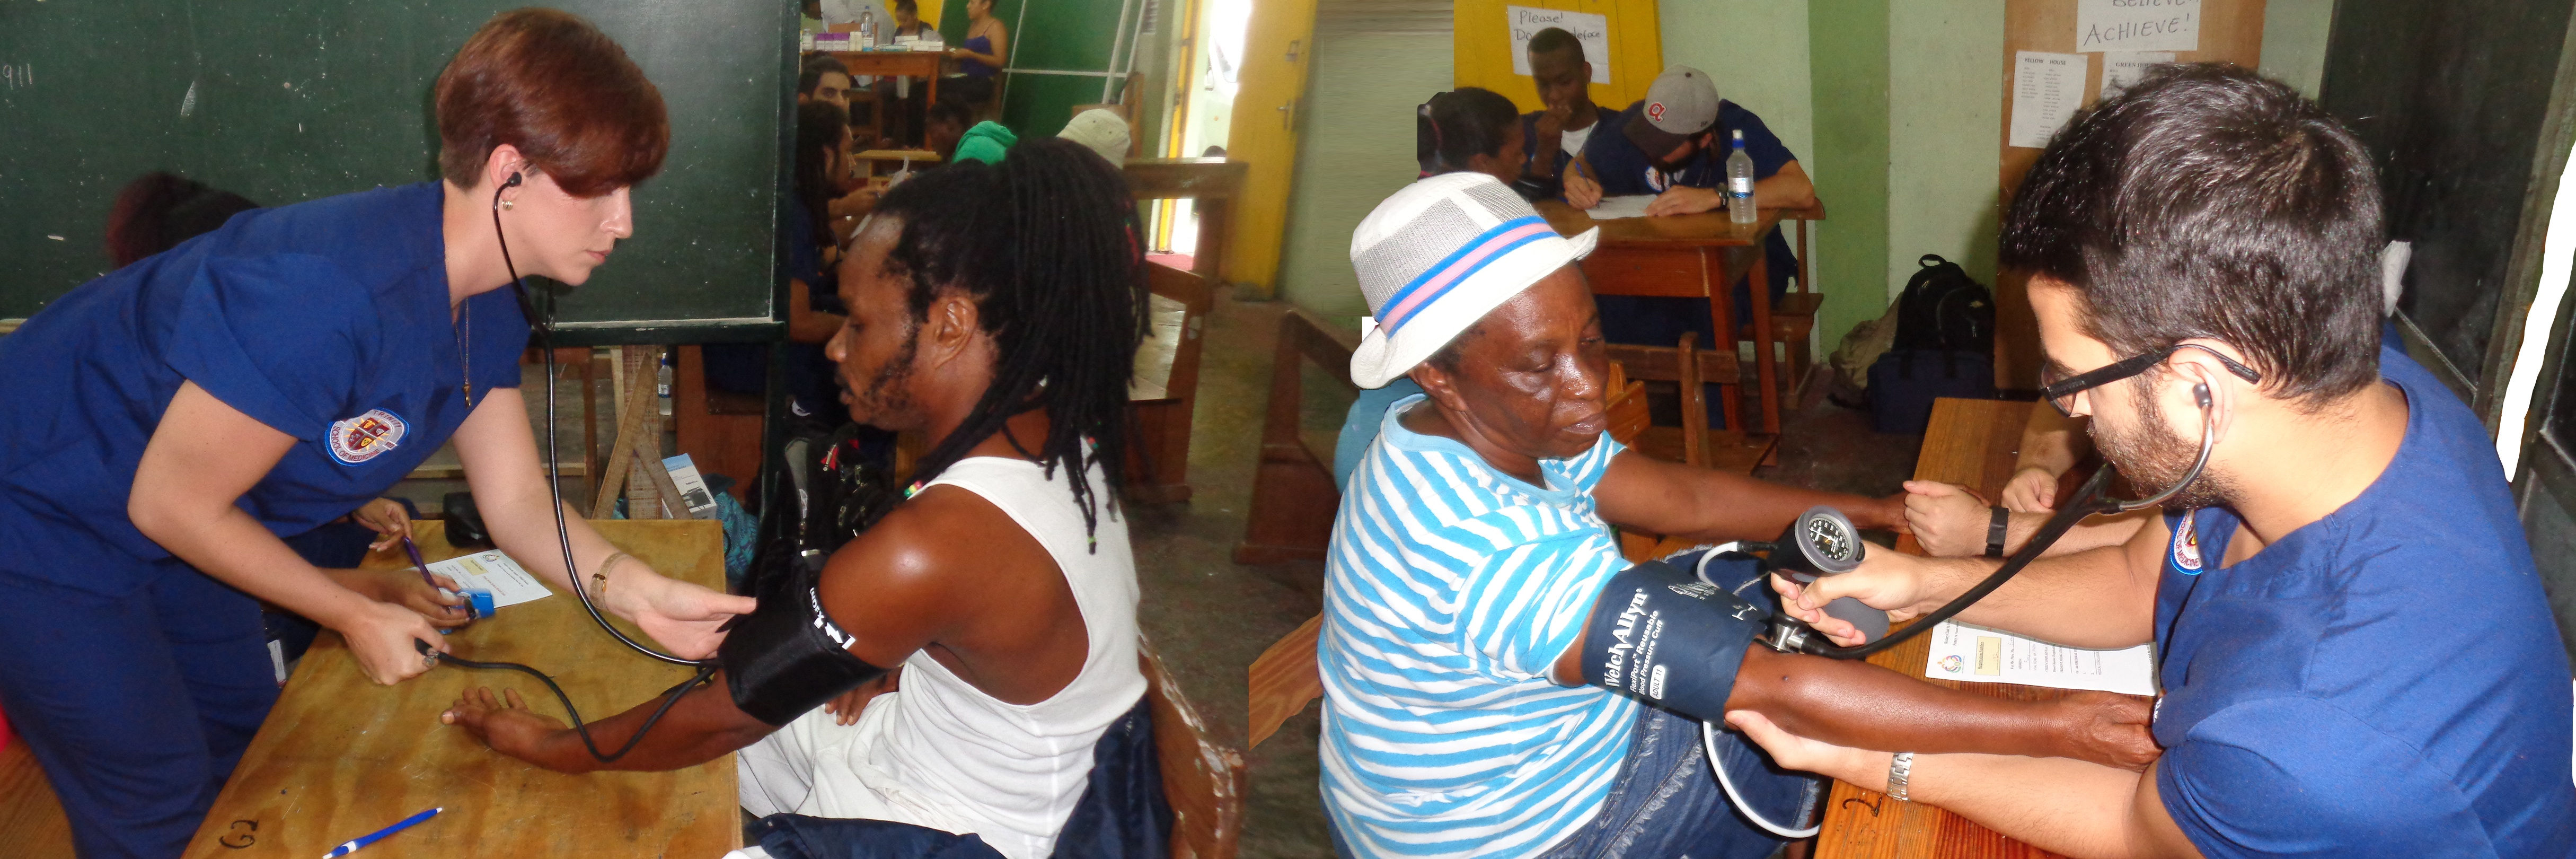 Trinity School of Medicine Students Participate in Village Doctor Medical Community Outeach